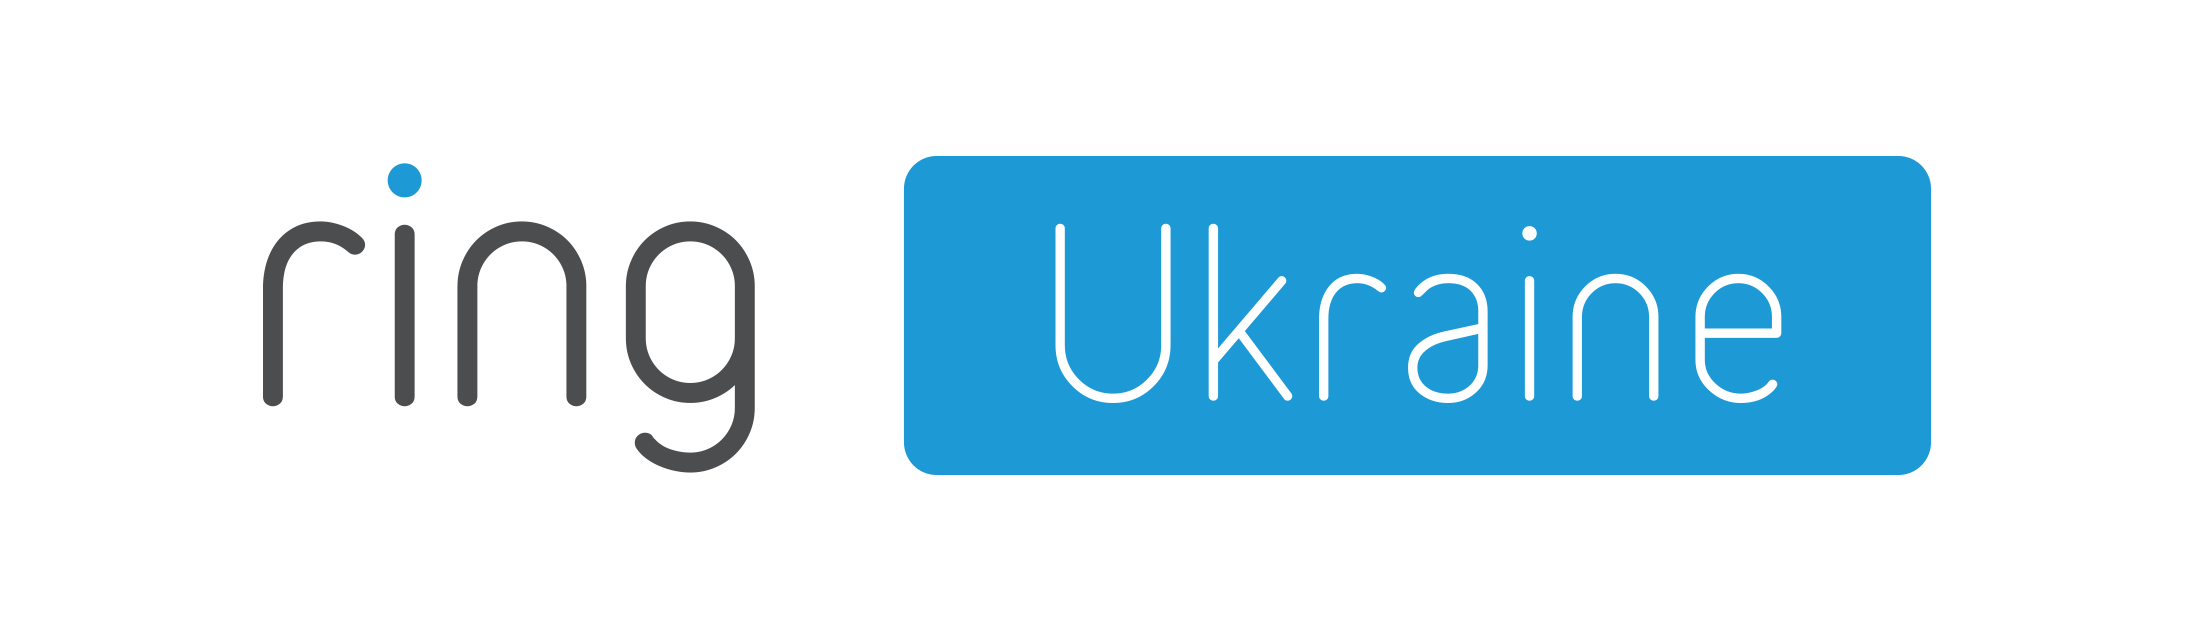 ring ukraine main